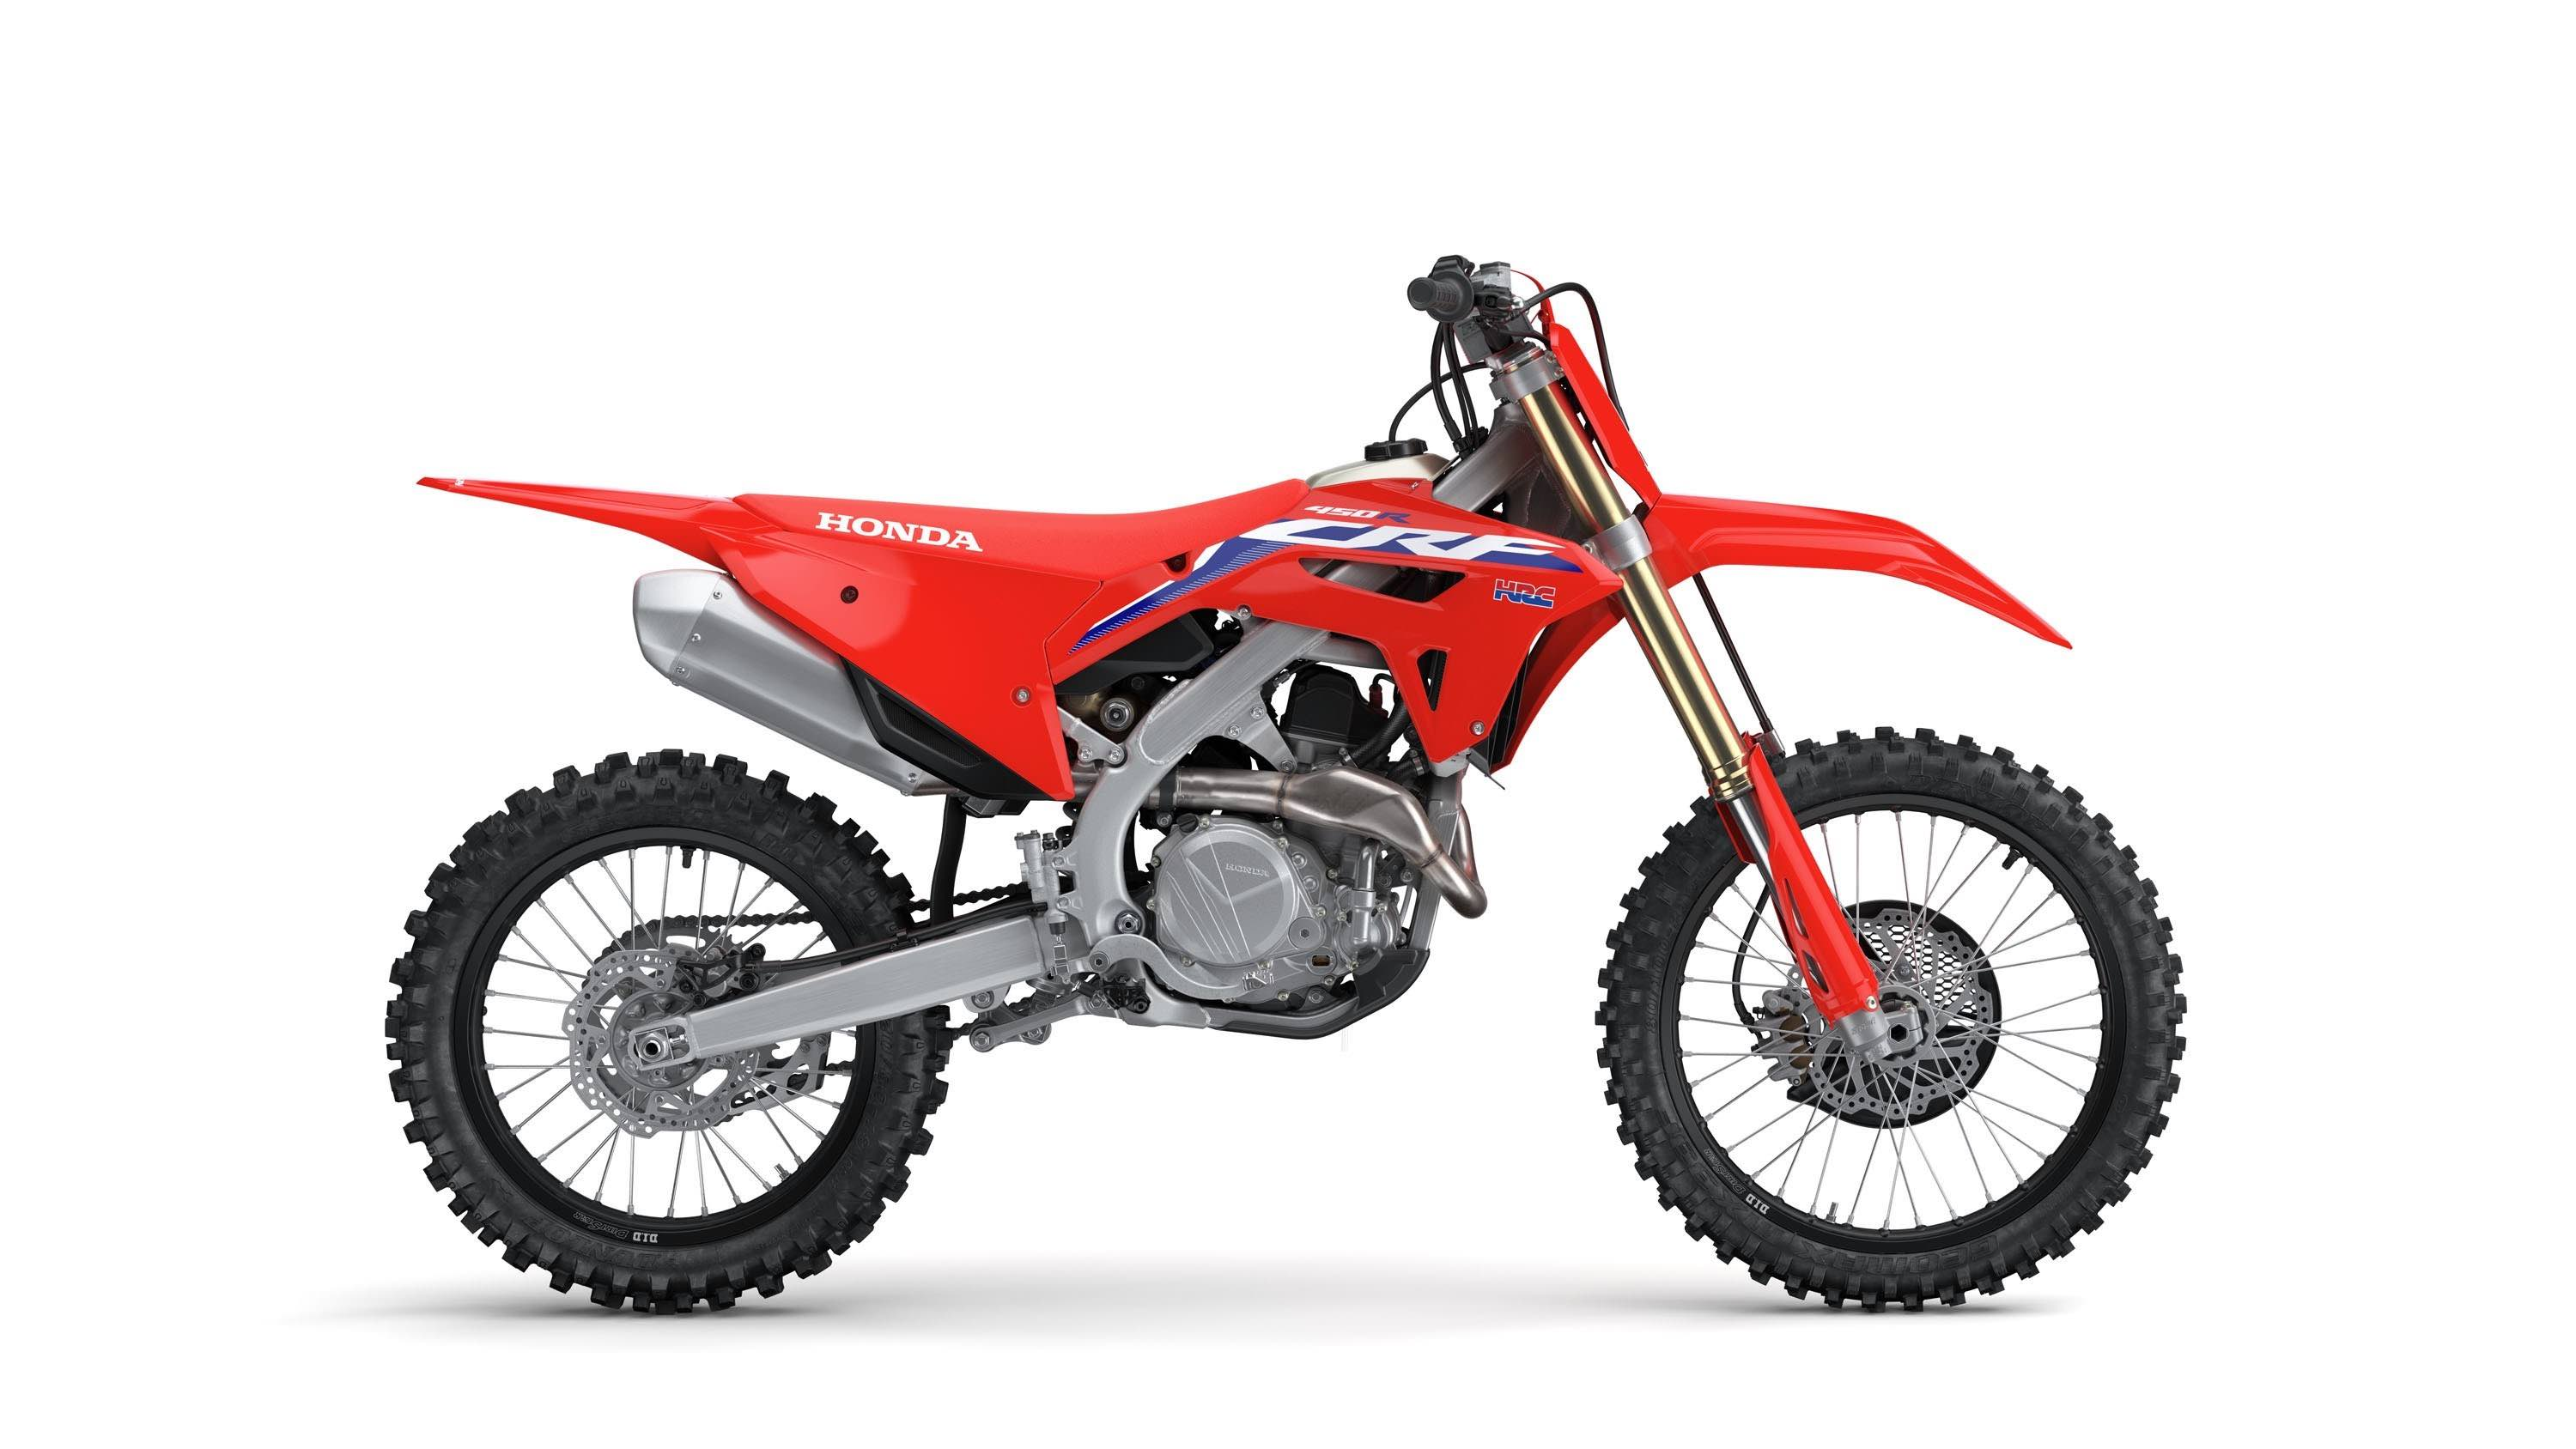 Introducing the all-new 2021 Honda CRF450R dirt bike